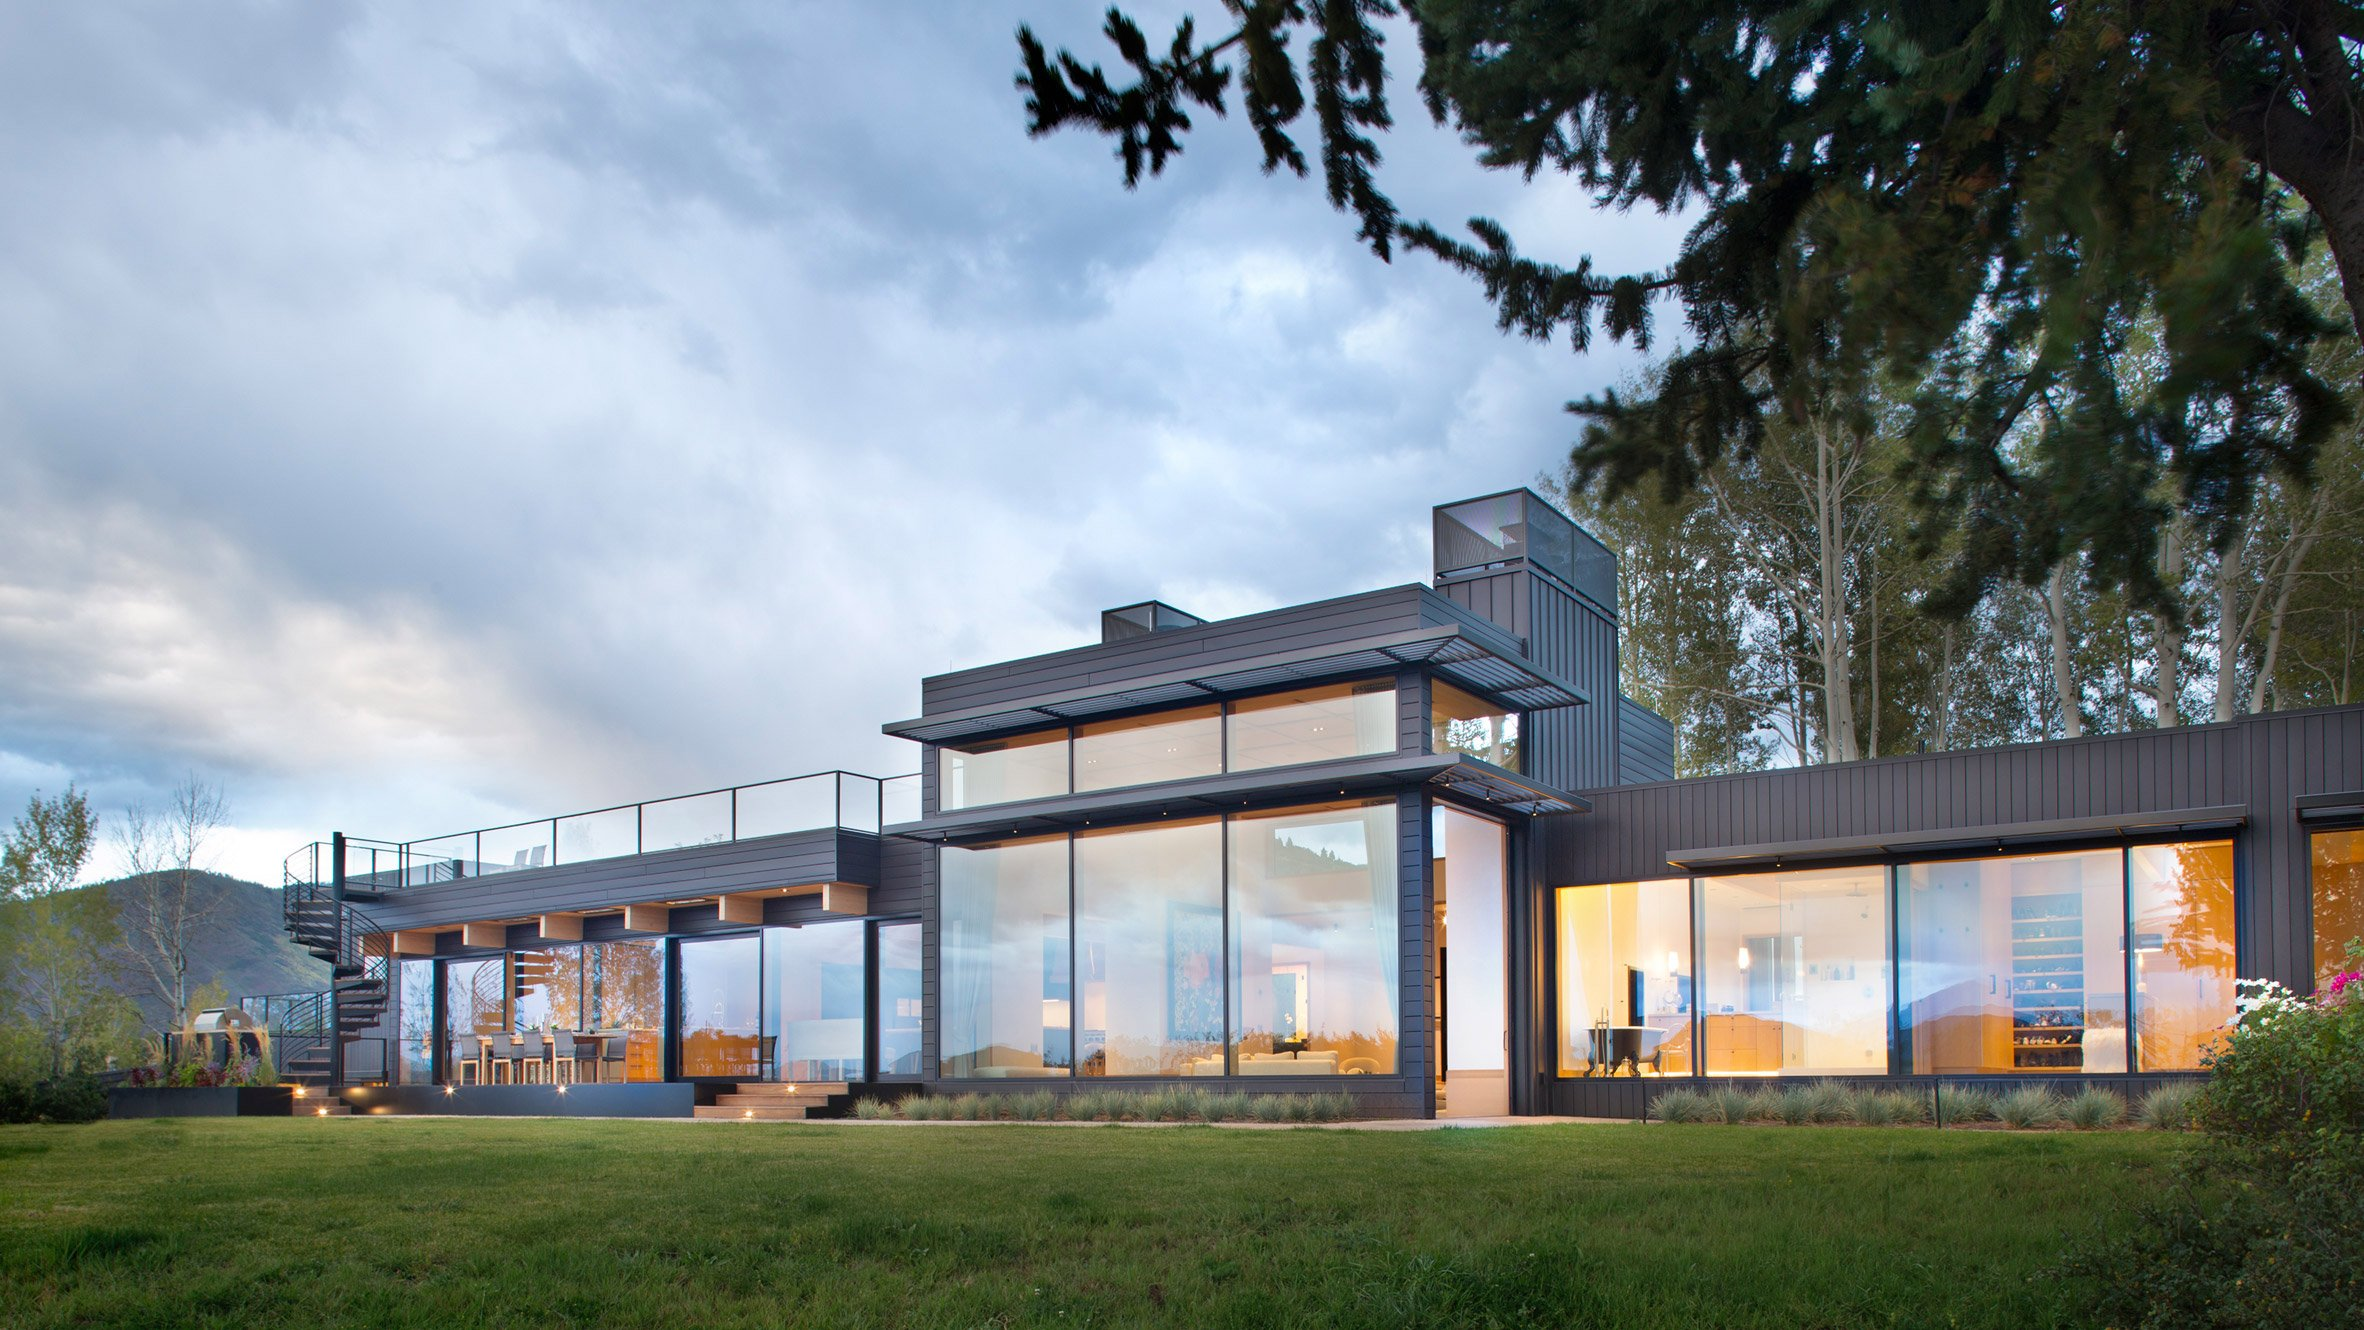 Ridge House by Rowland + Broughton frames views of Rocky Mountains